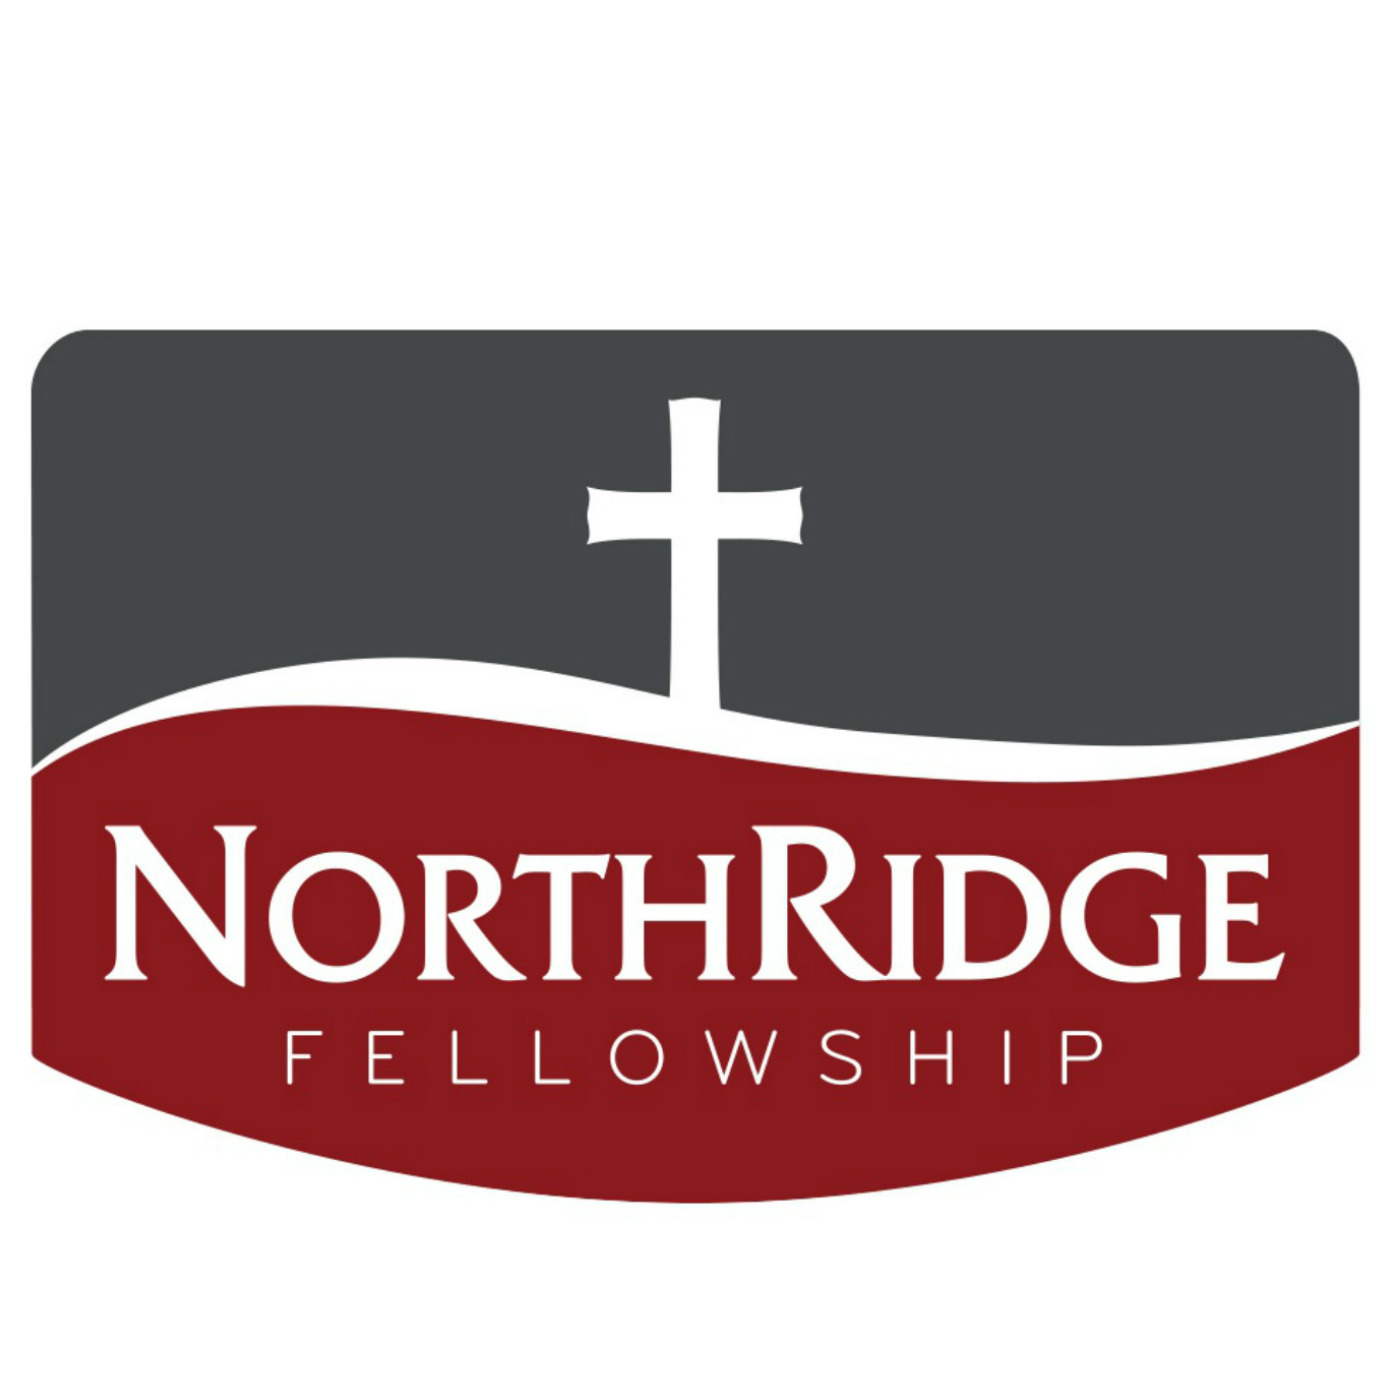 NorthRidge Fellowship